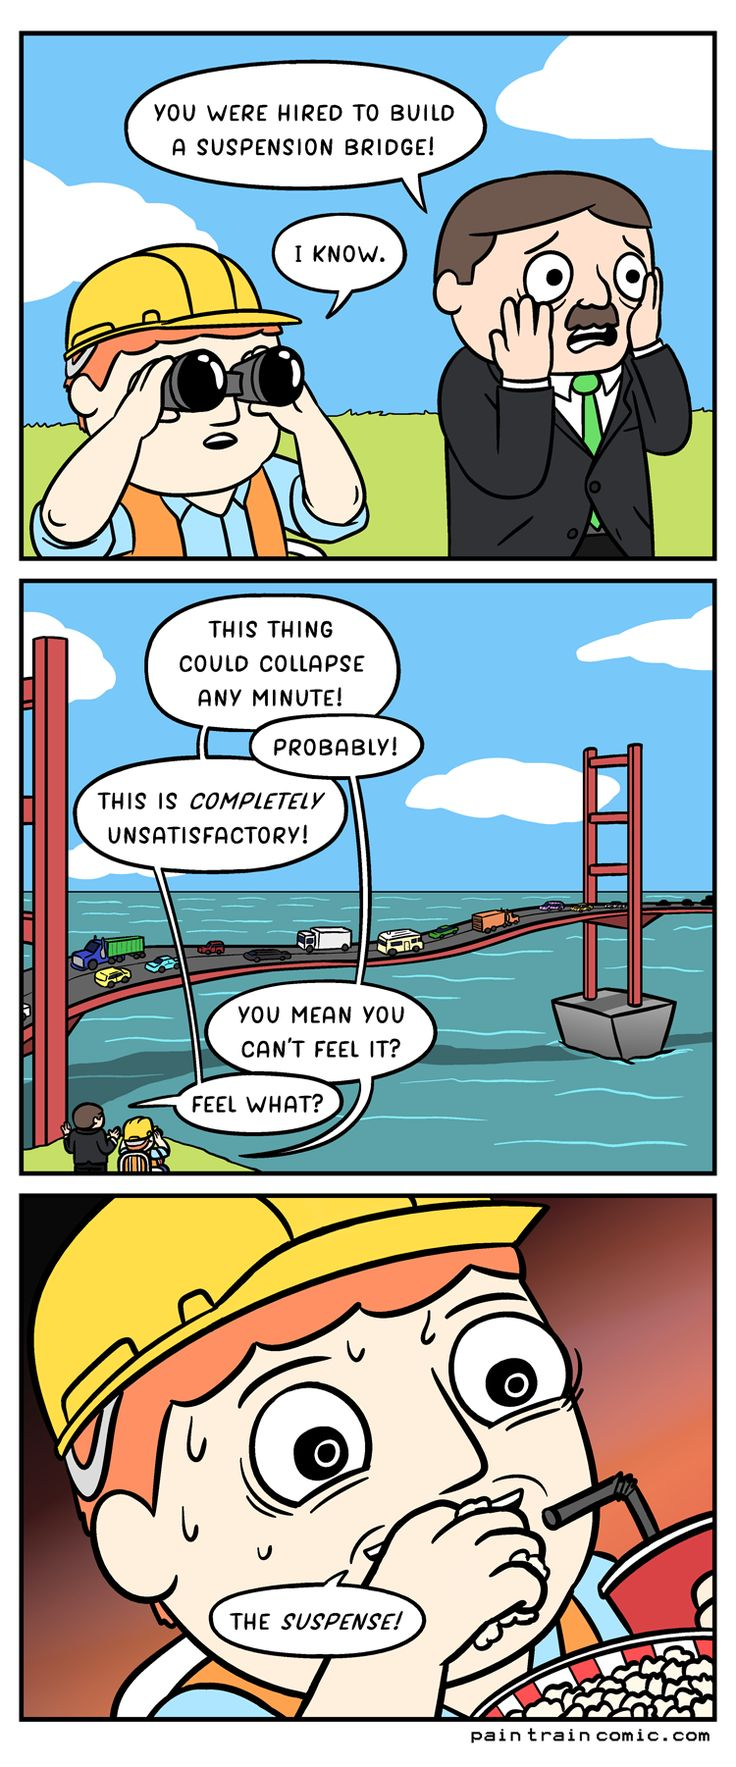 How I Envisioned My Degree in Civil Engineering